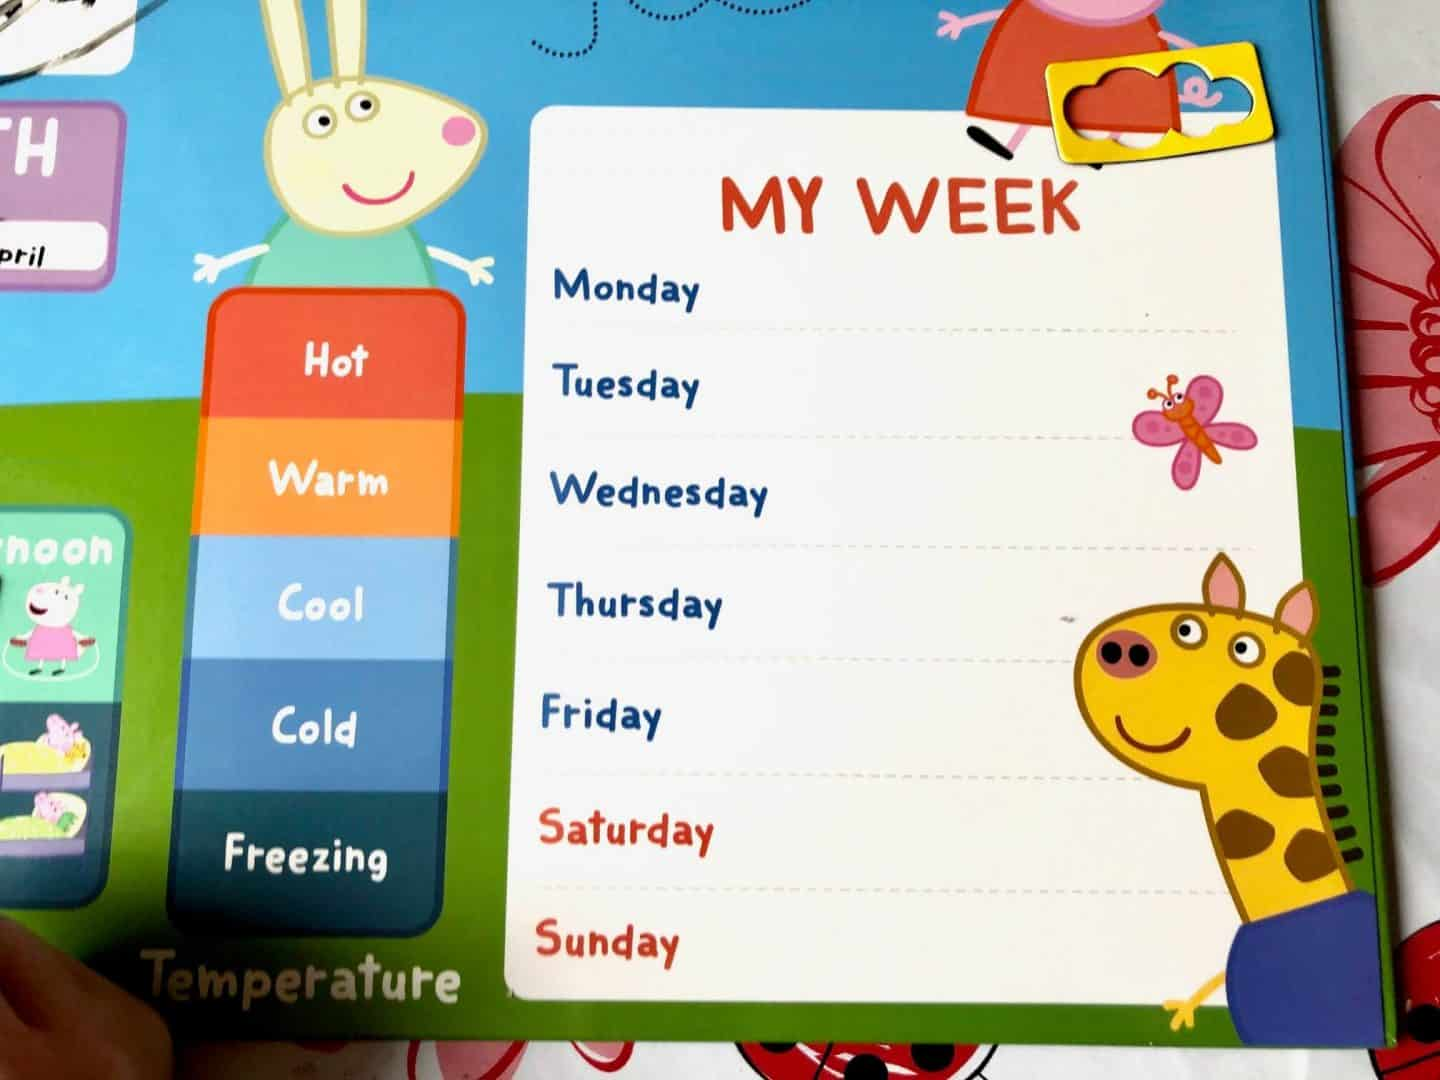 My First Calendar - - my week appointments